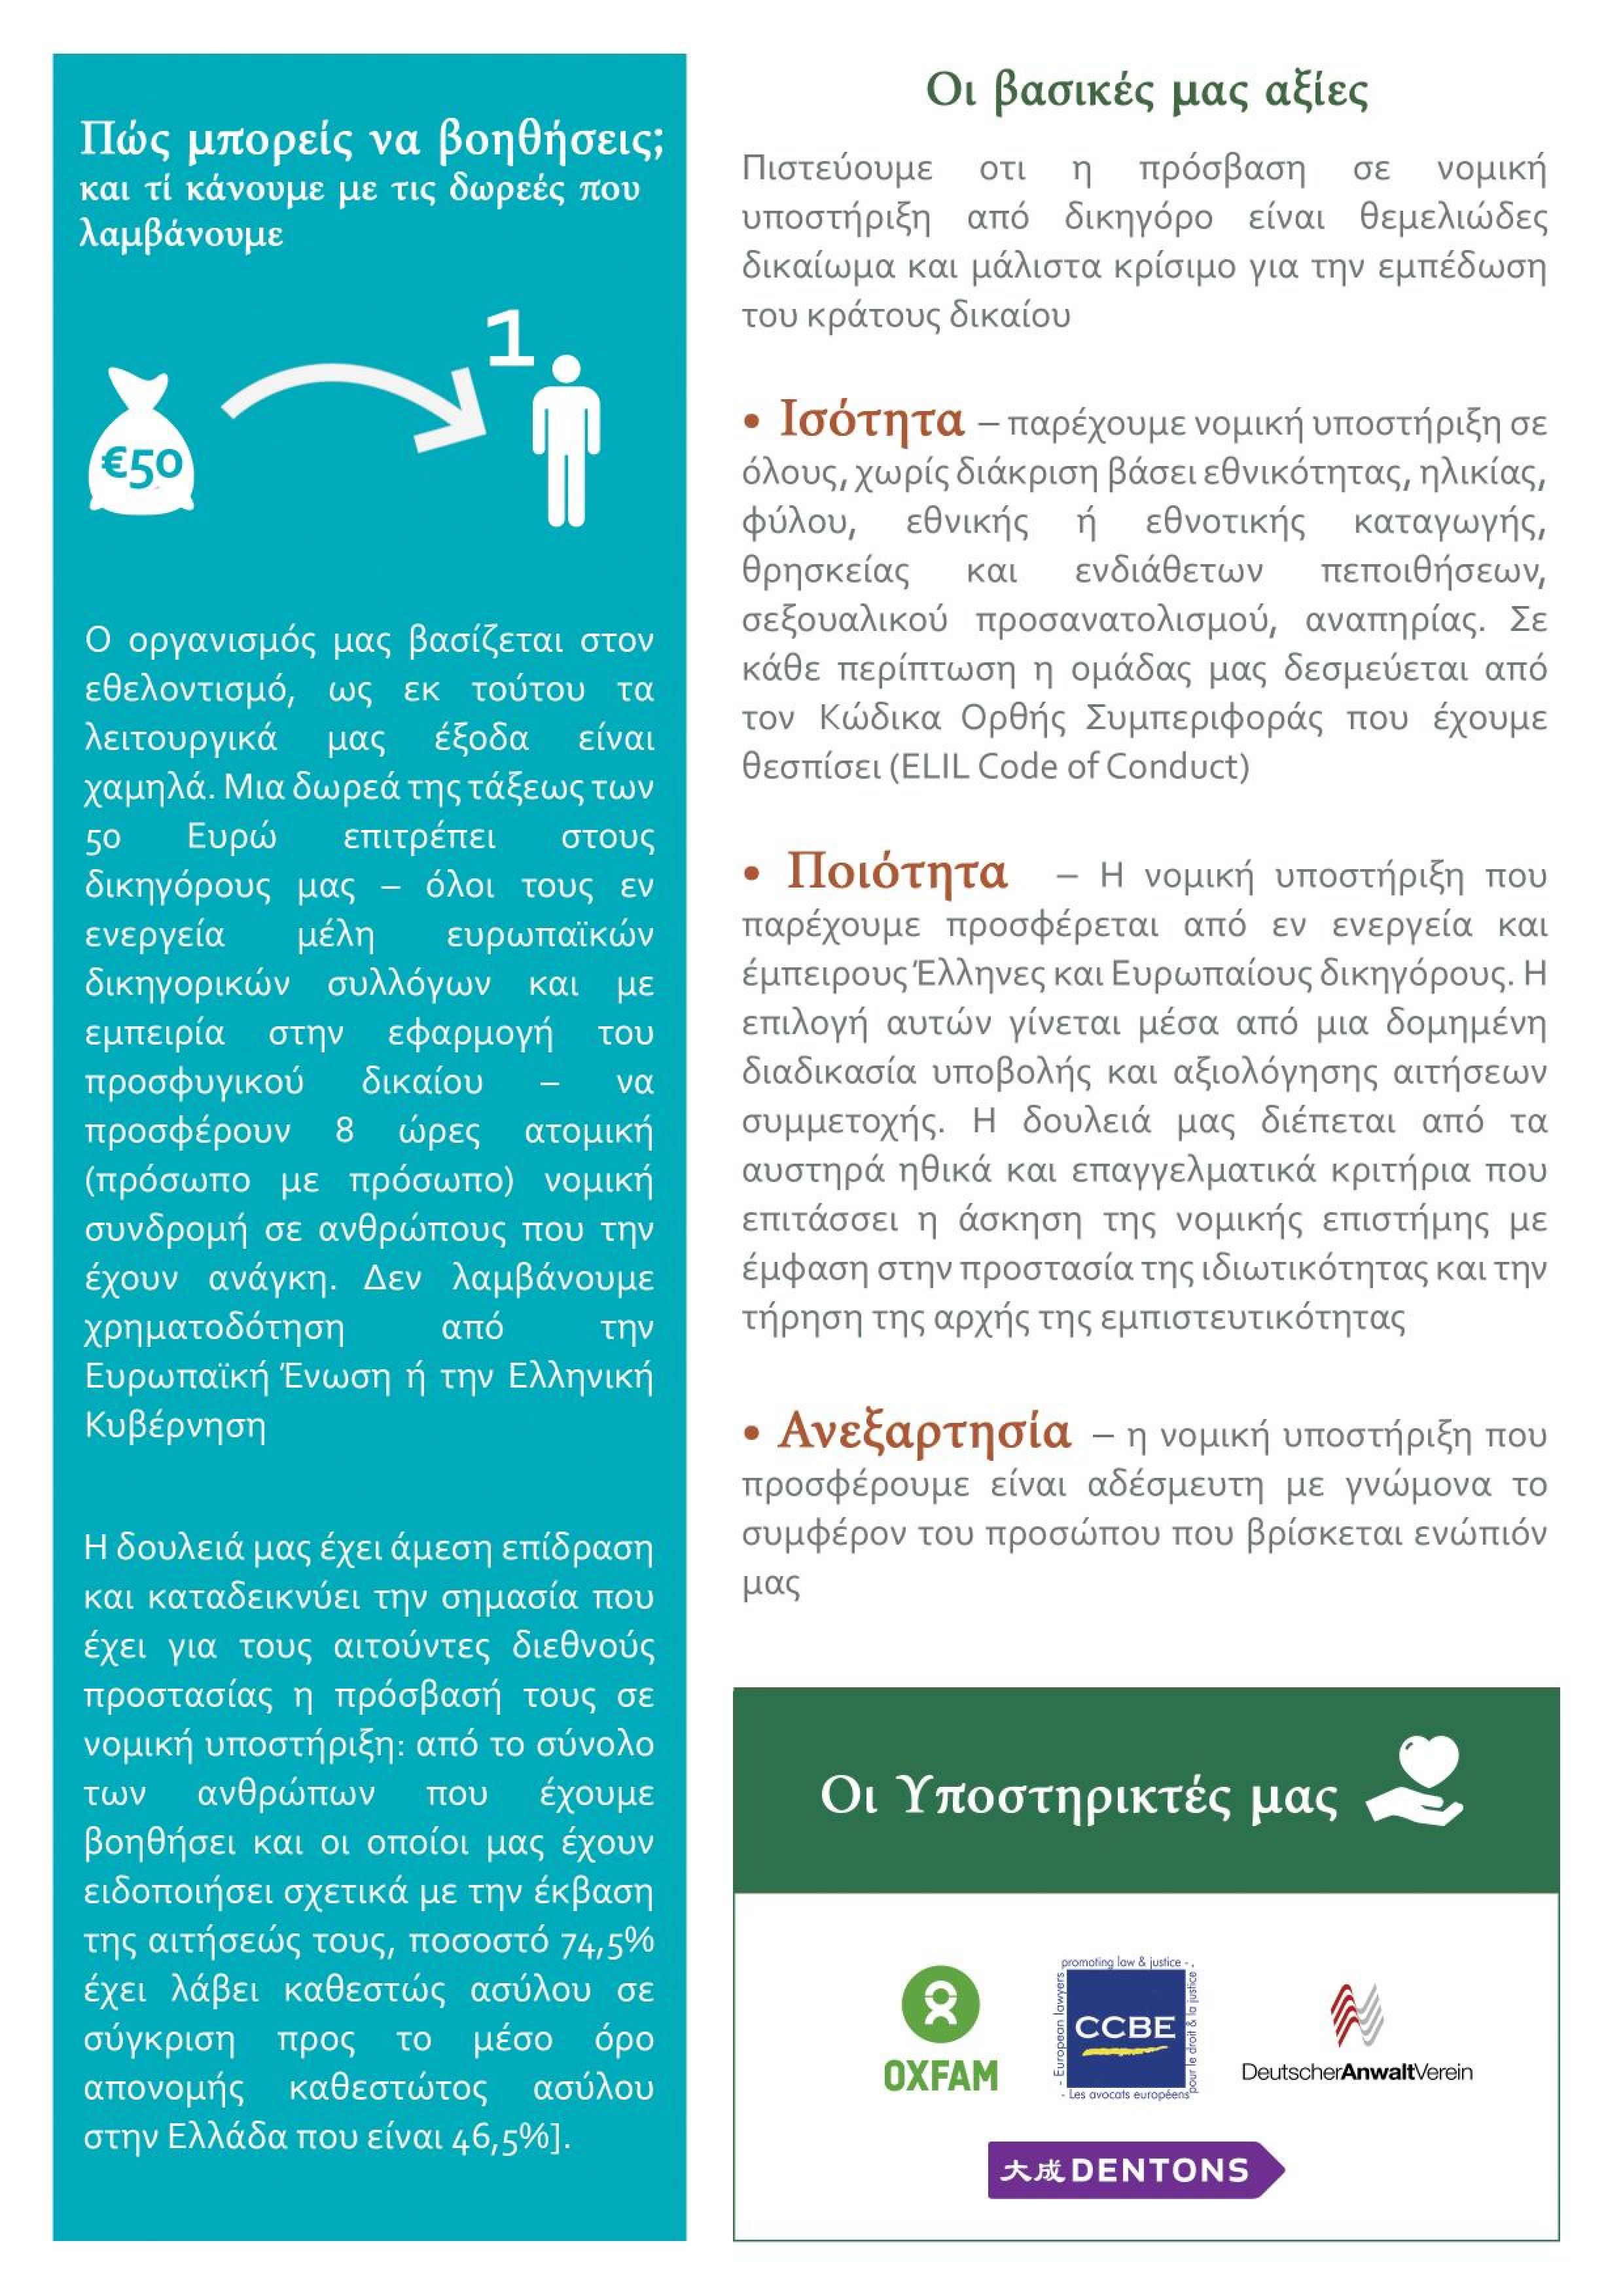 European Lawyers in Lesvos - Infographic_GR-page-003.jpg